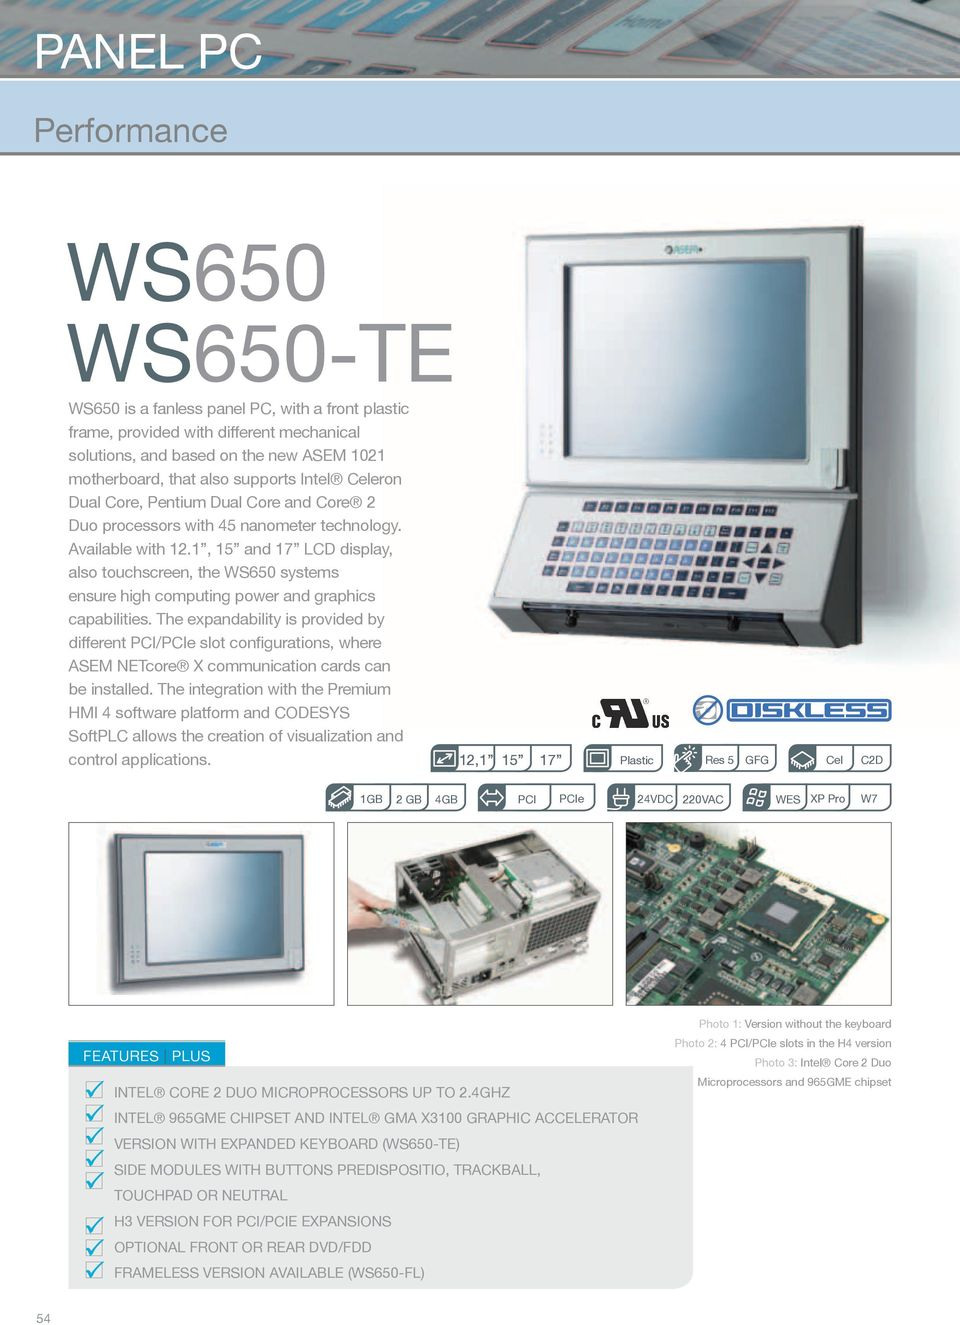 1, and LCD display, also touchscreen, the WS650 systems ensure high computing power and graphics capabilities.